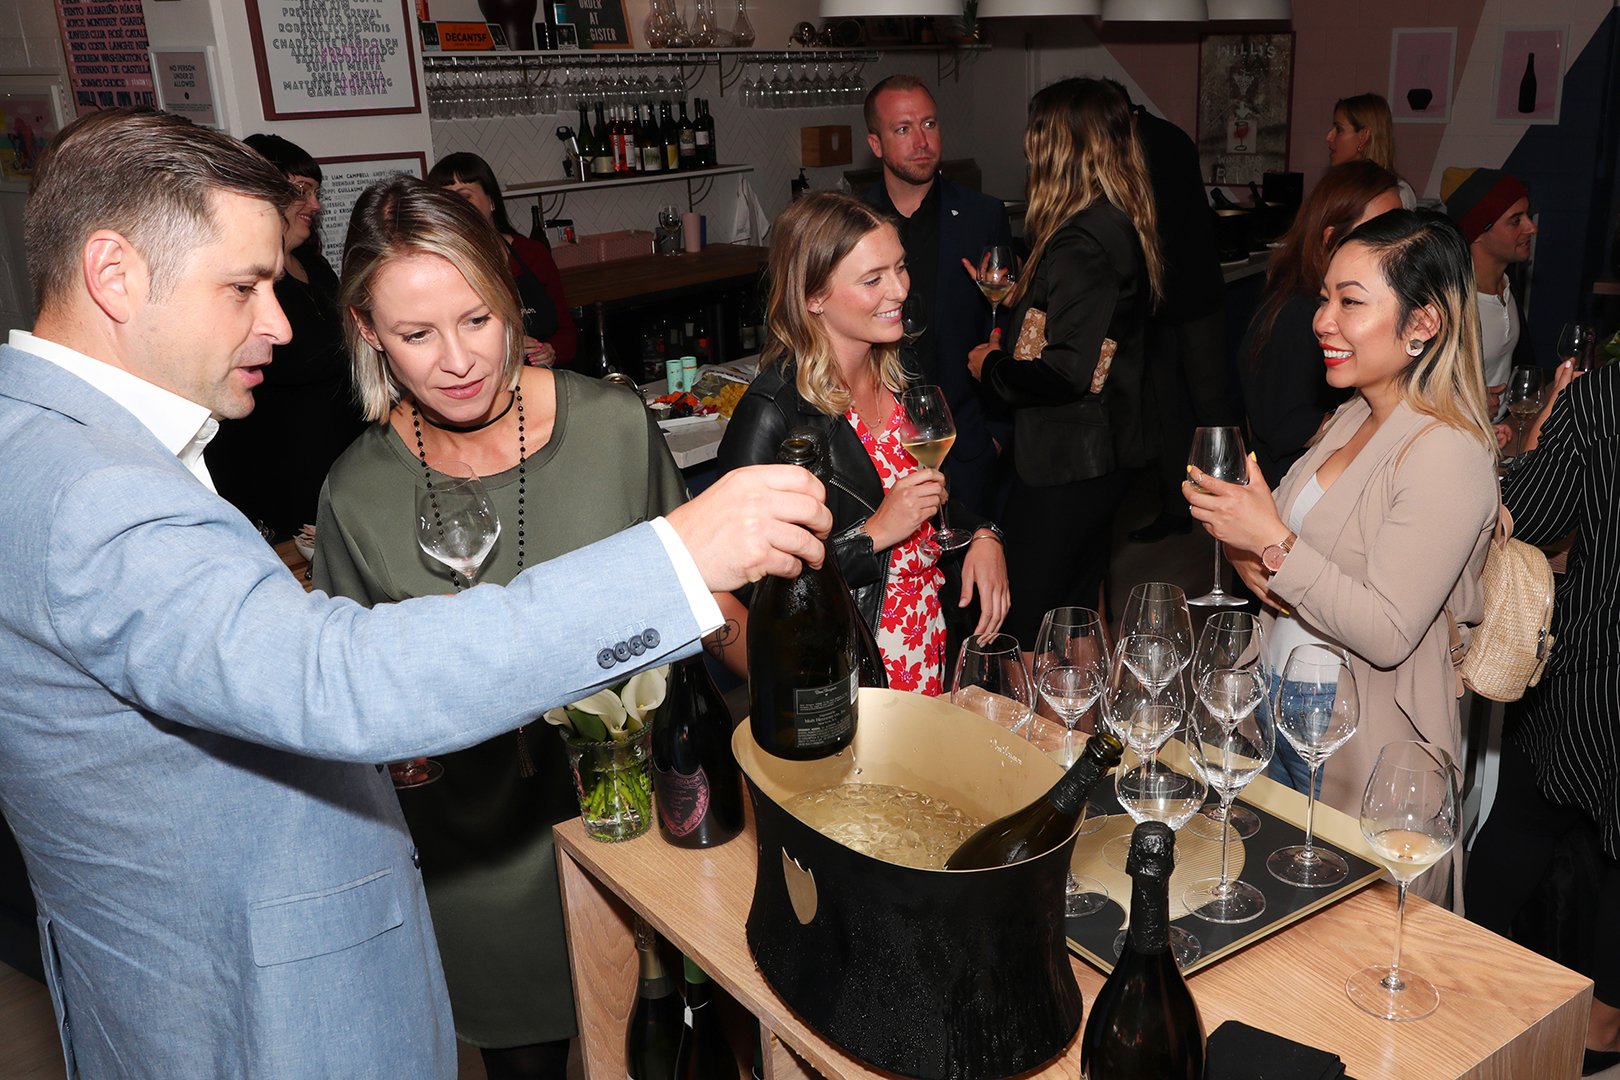 DOM Pérignon @ DECANTsf 6/24/19 - Dom Pérignon Brand Ambassador Diego Meraviglia and DECANTsf's Cara Patricia preview the 2006 Vintage Rosé and the 2002 P2 to invited sommeliers in the San Francisco Bay Area on June 24, 2019.photos by Dirk Wyse.